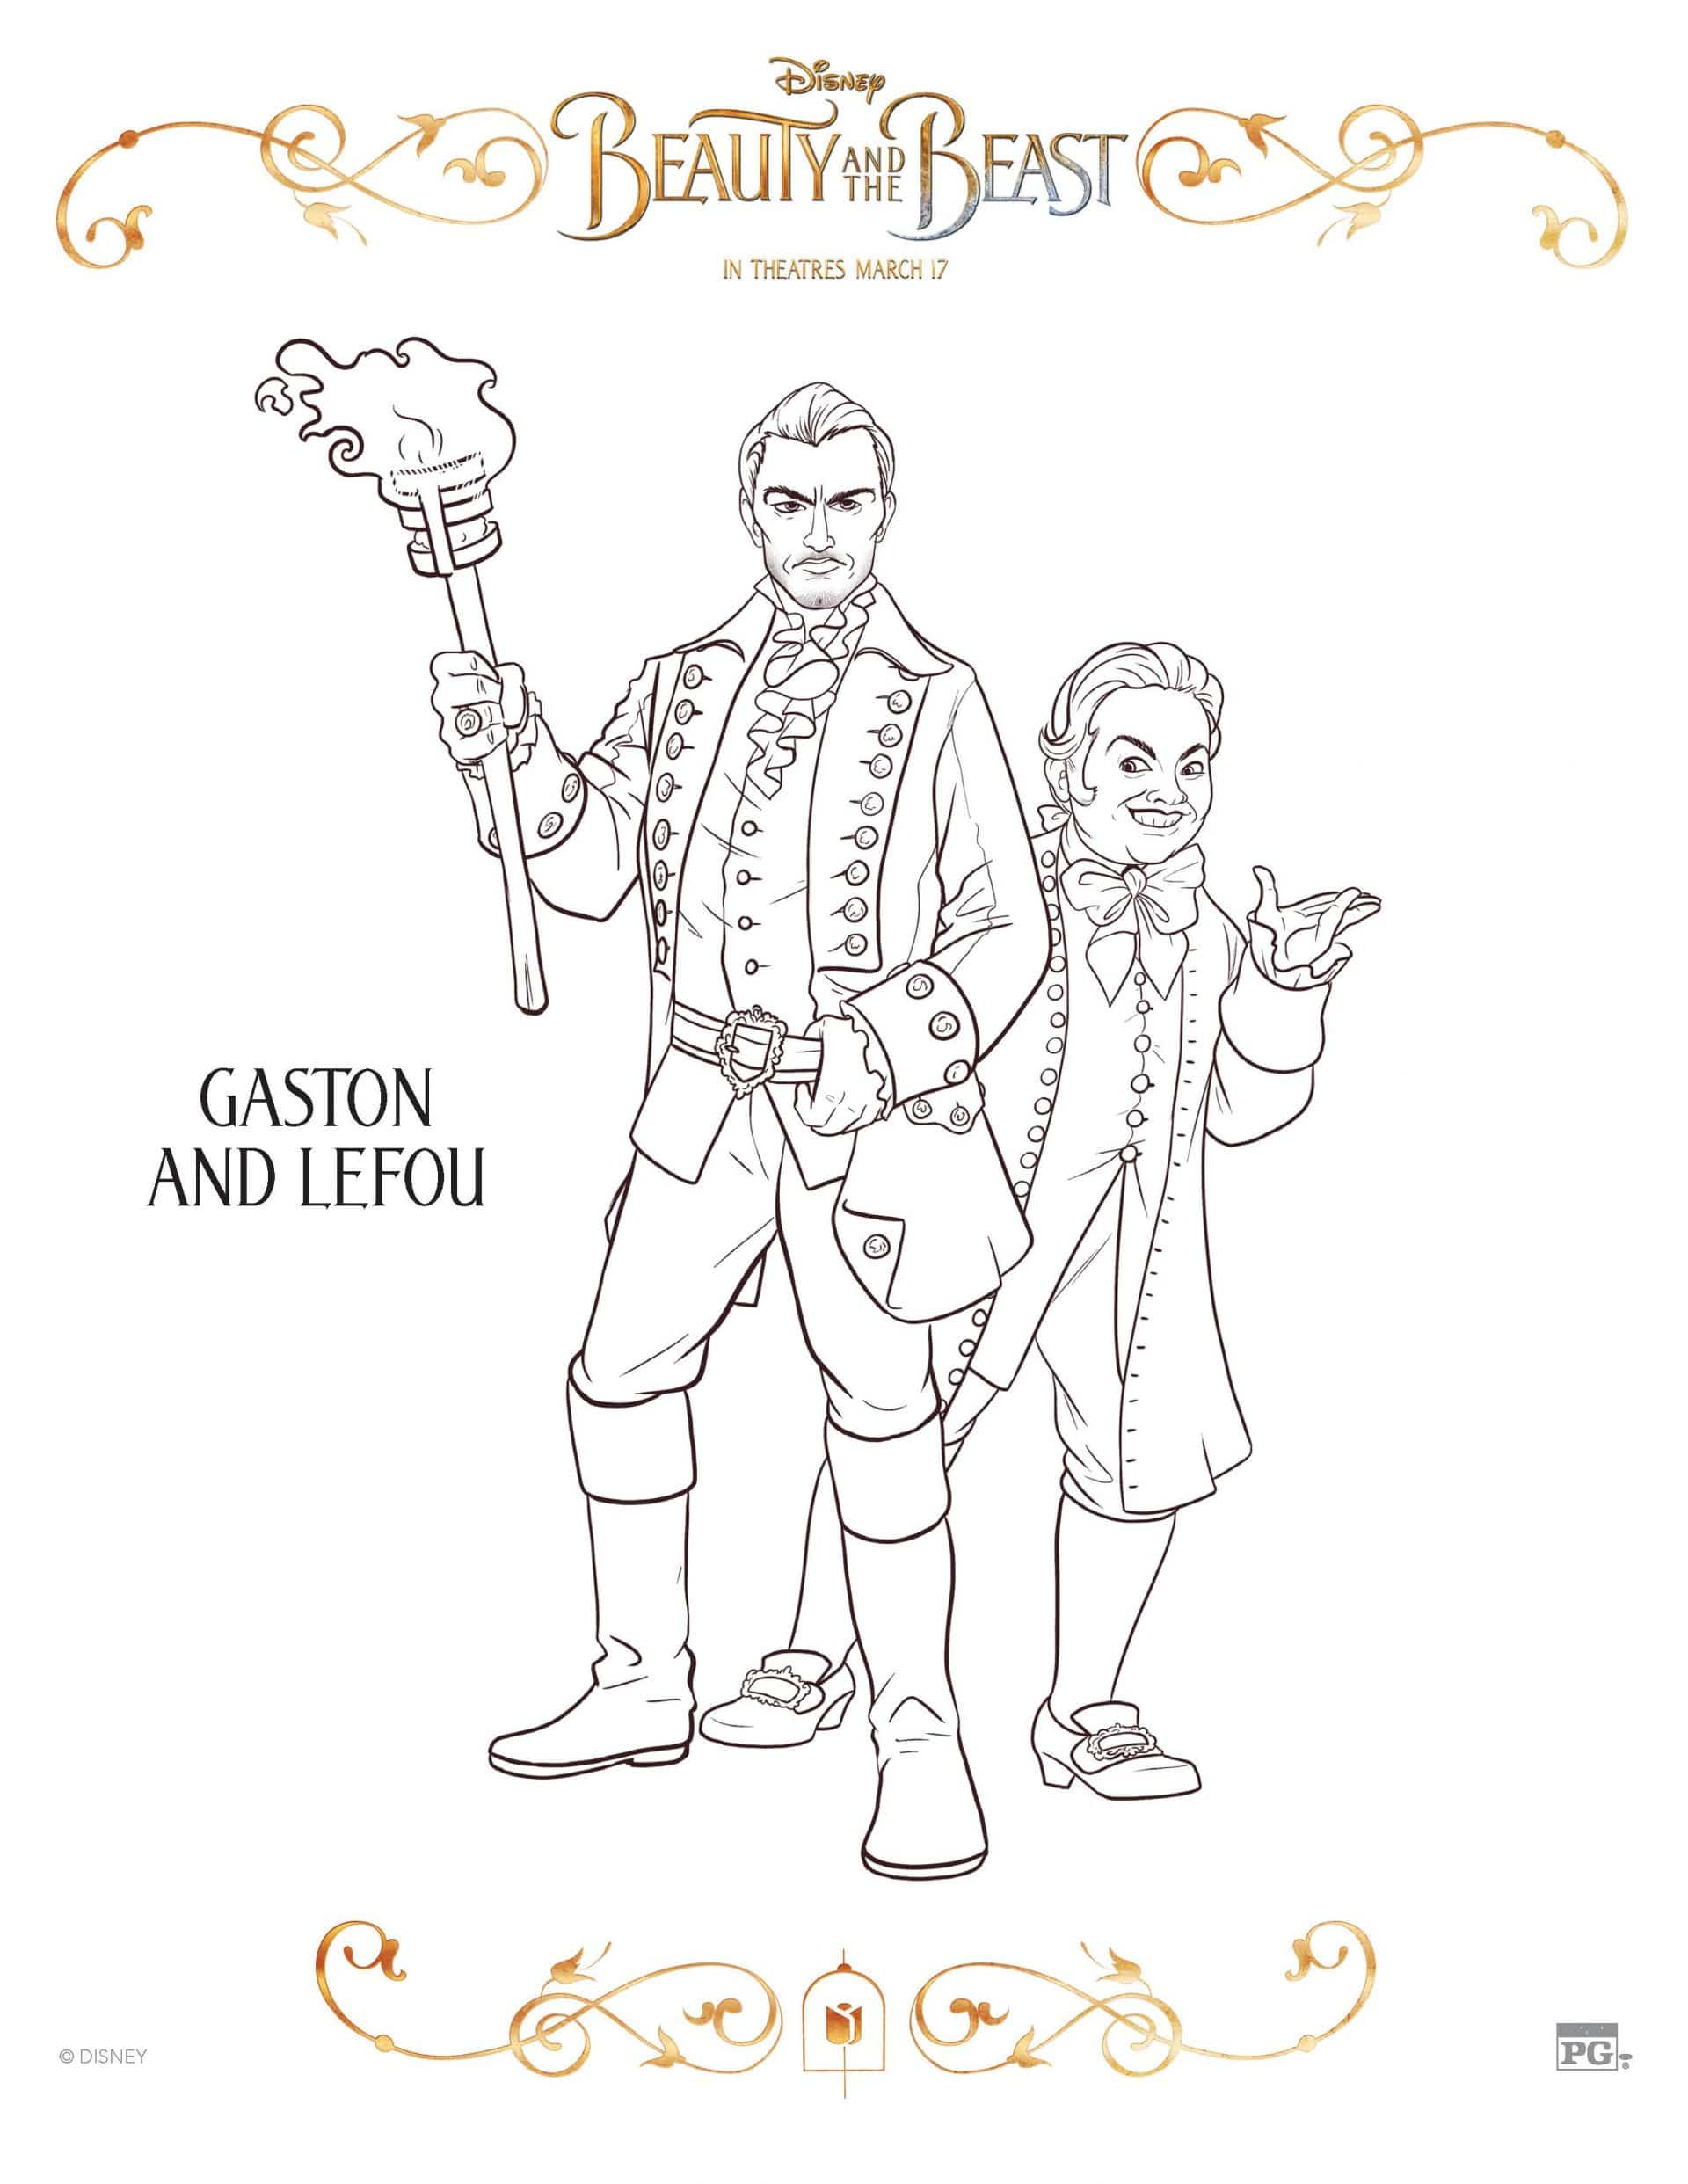 Beauty And The Beast Gaston and Lefou Coloring Page